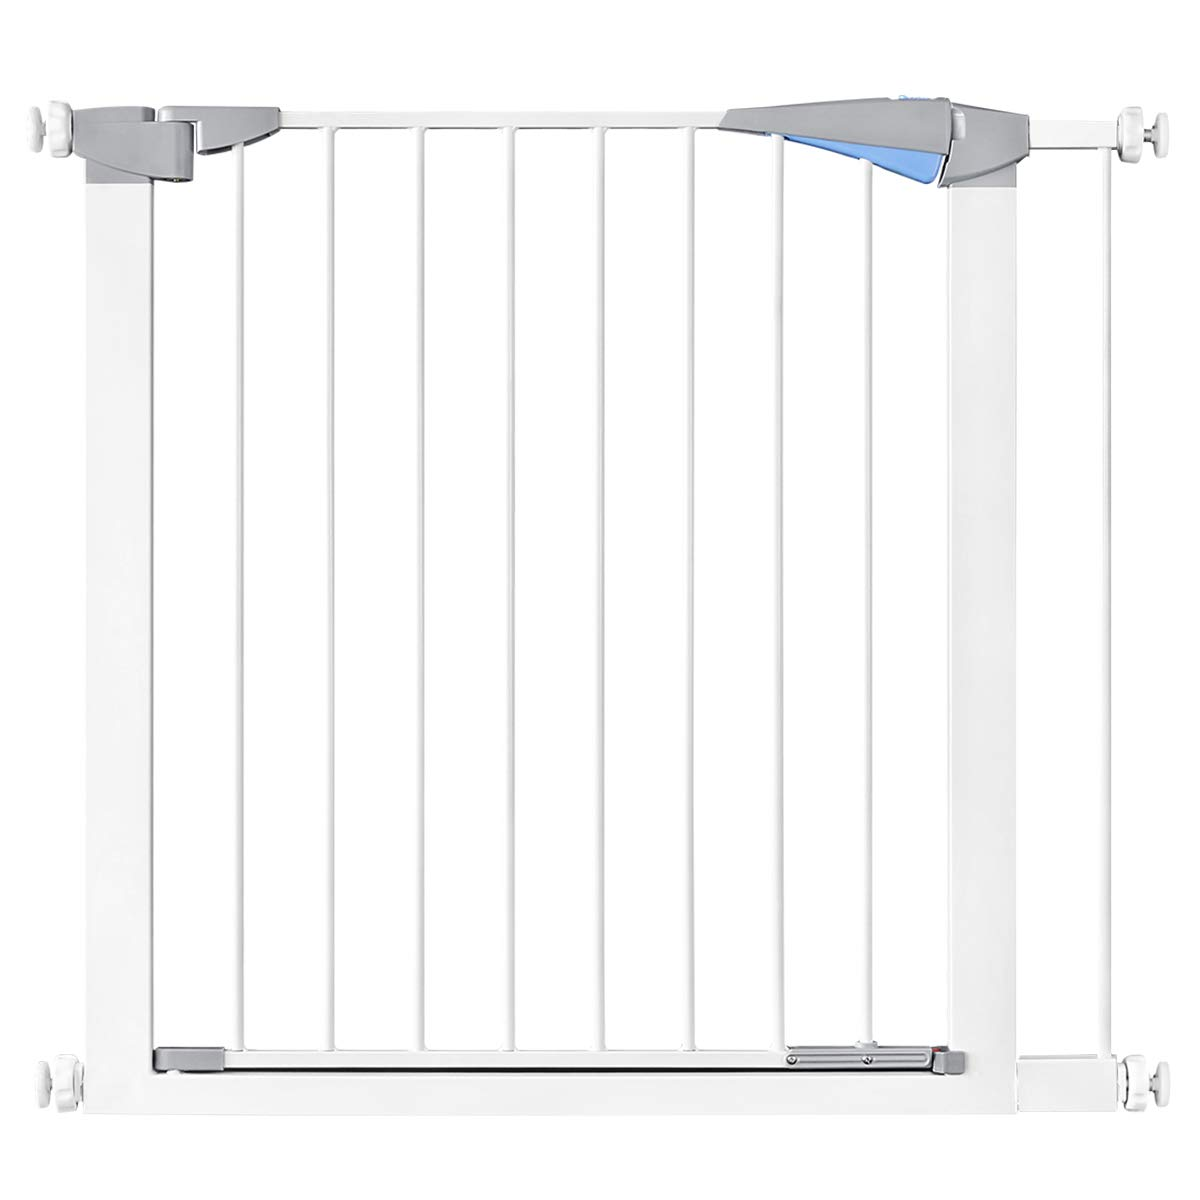 31.8 Auto Close Safety Baby Gate, Extra Wide Walk Thru Dog Gate with Pressure or Hardware Mount for Stairs, Doorways and Hallways, Includes 2.7 Extension Kits, White